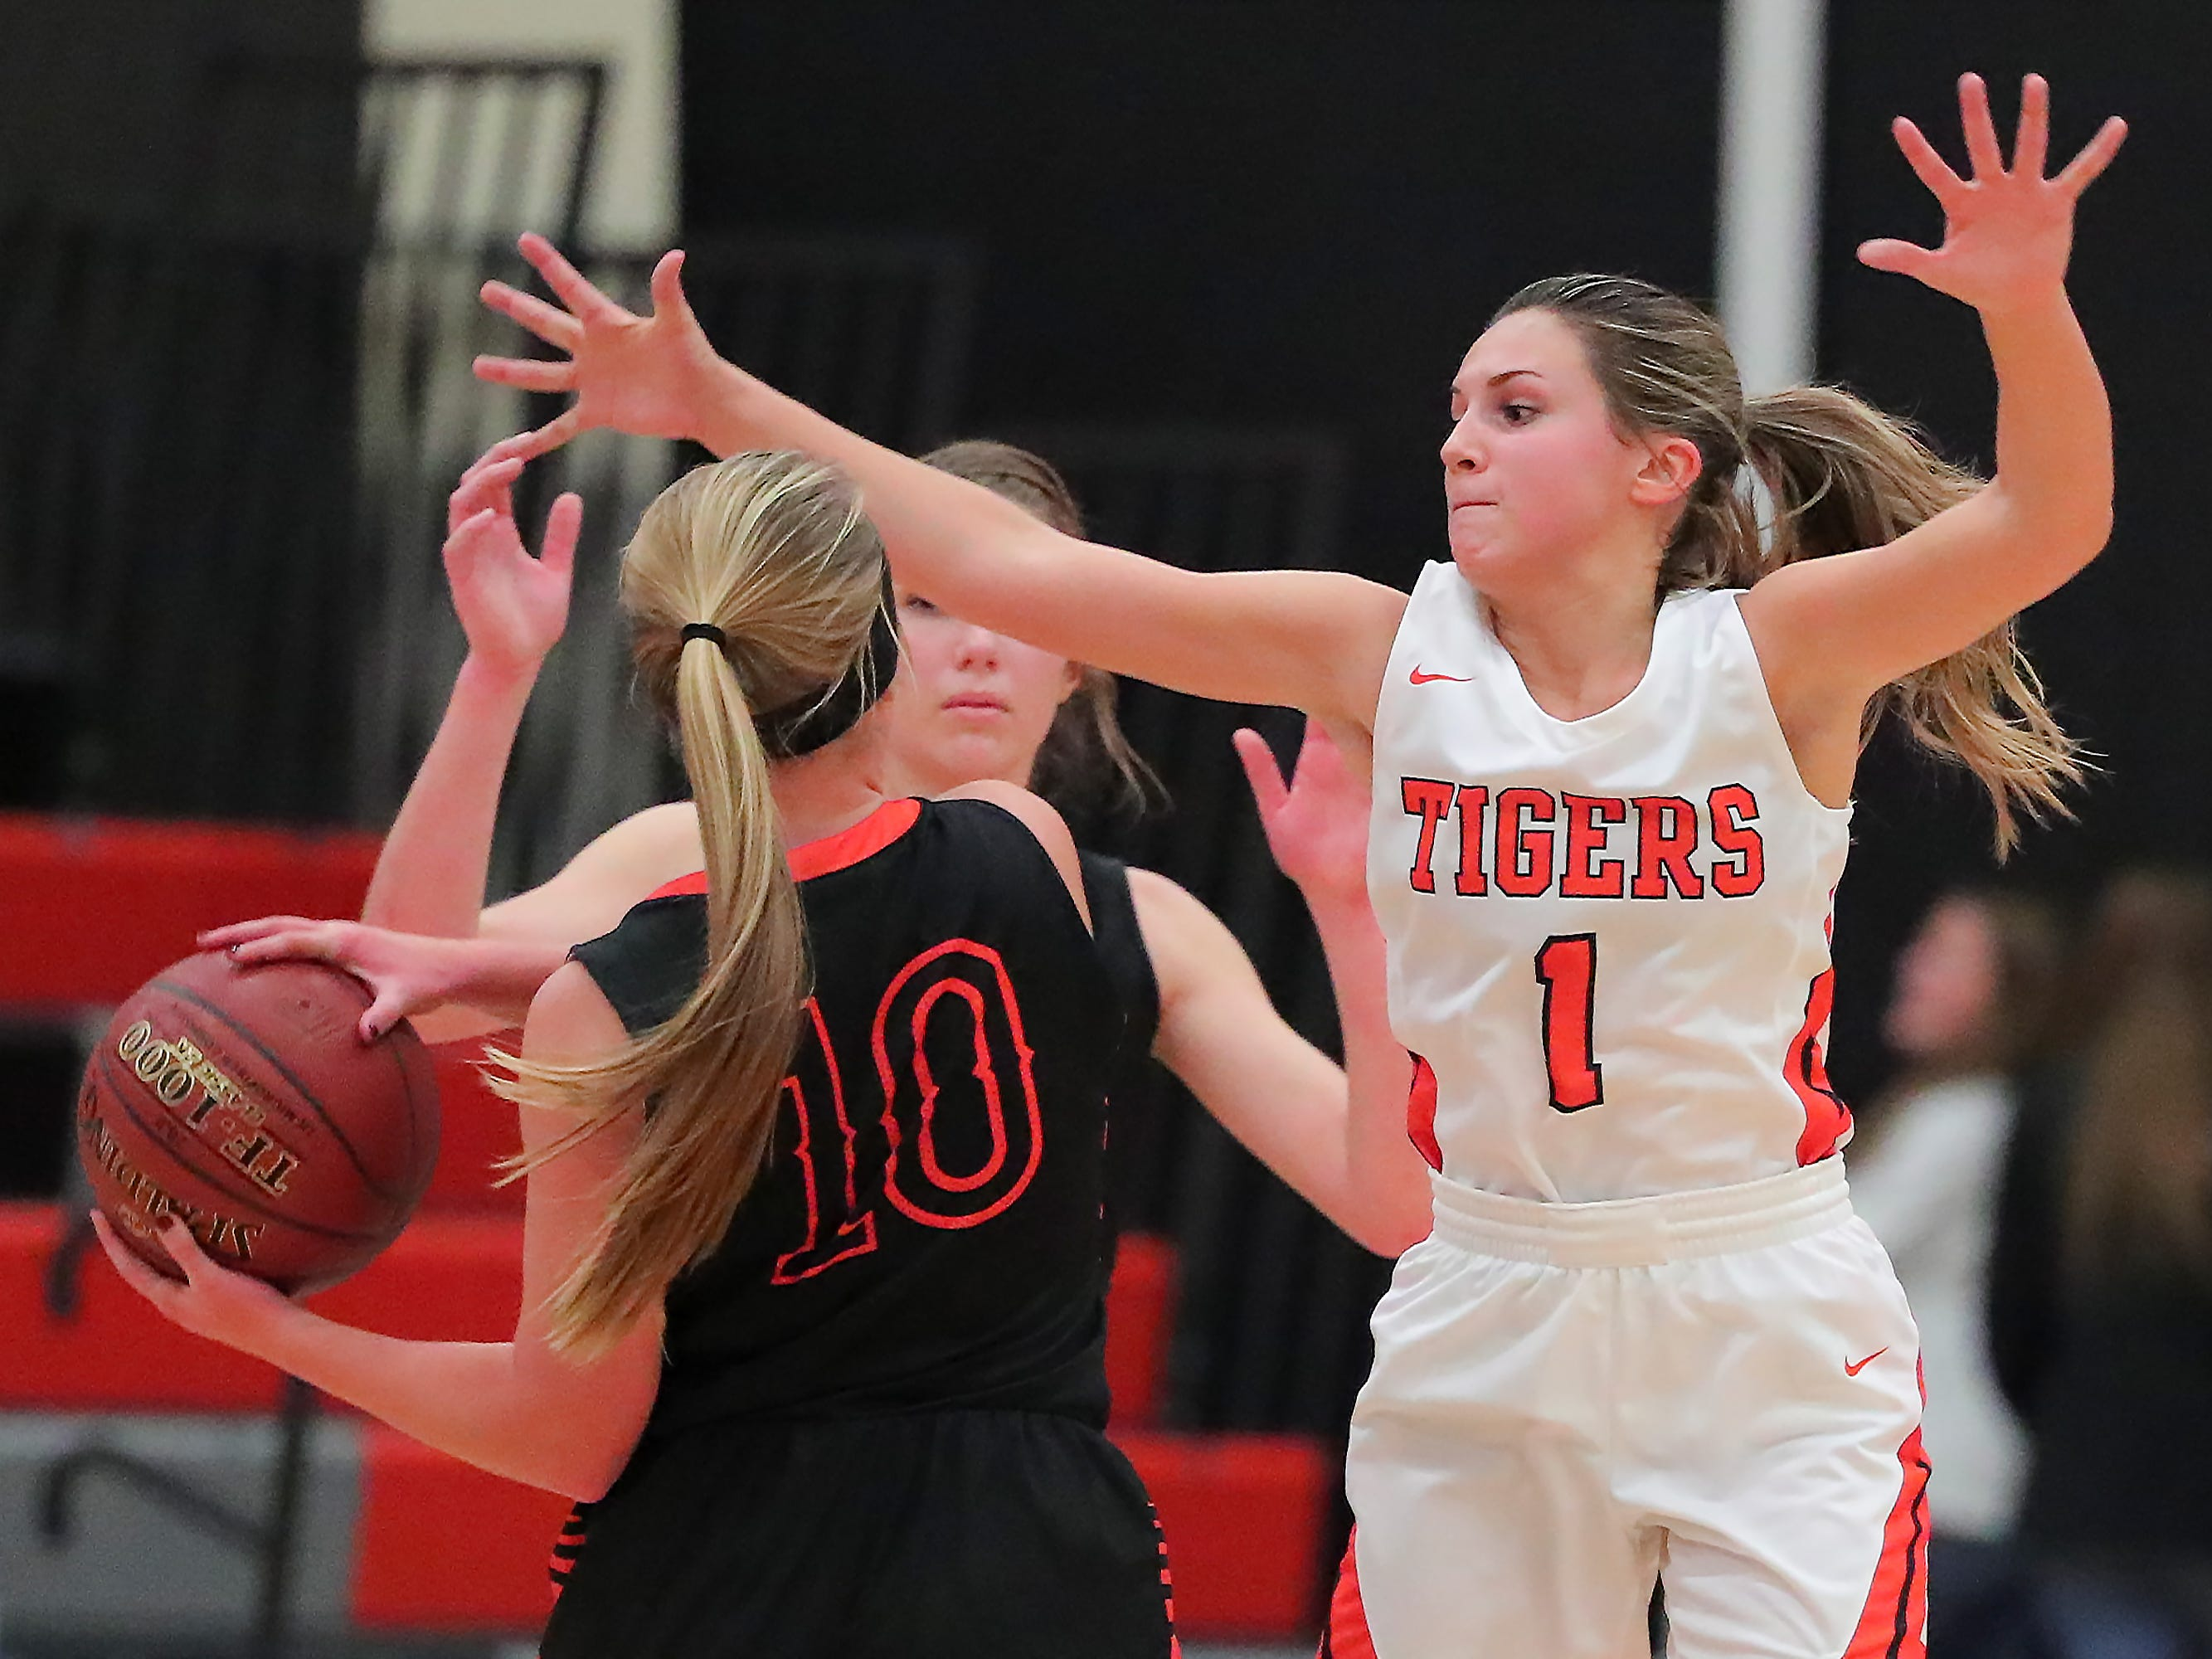 Maria Meincke (1) of Ripon tries to block Karlee Lamb (10) of North Fond du Lac. The Ripon Tigers hosted the North Fond du Lac Orioles in a non-conference basketball game Thursday evening, November 15, 2018.